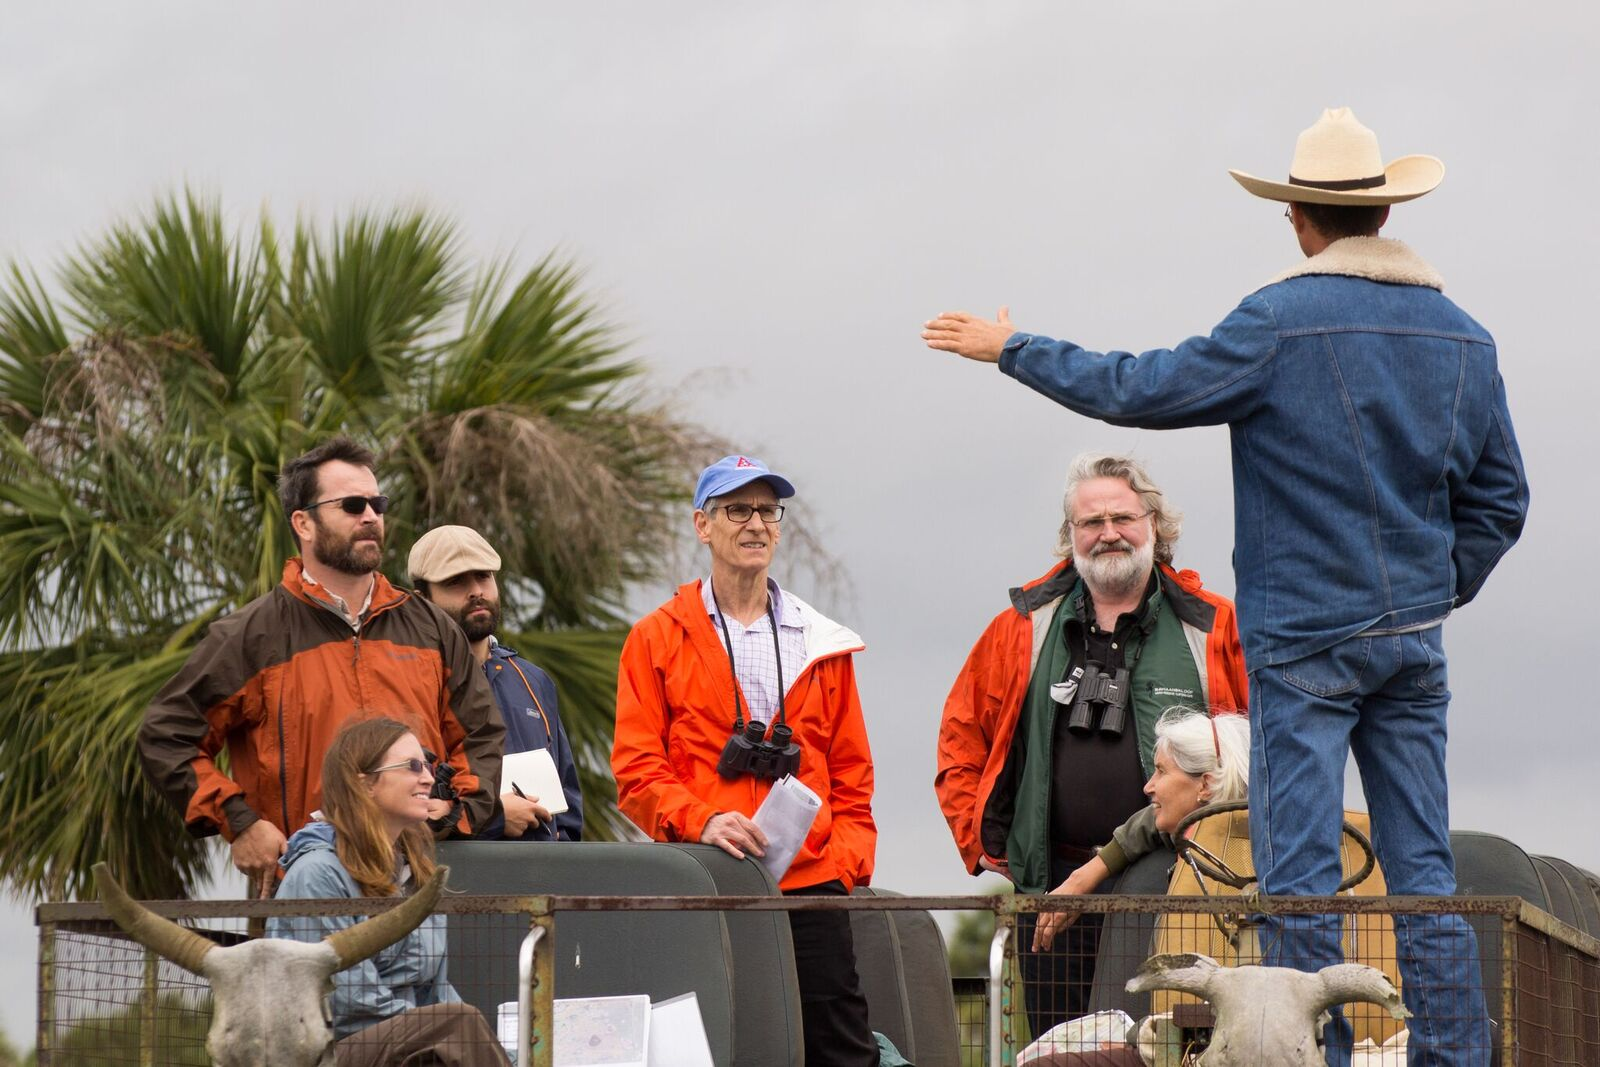 Swamp buggy tour at the MAERC site